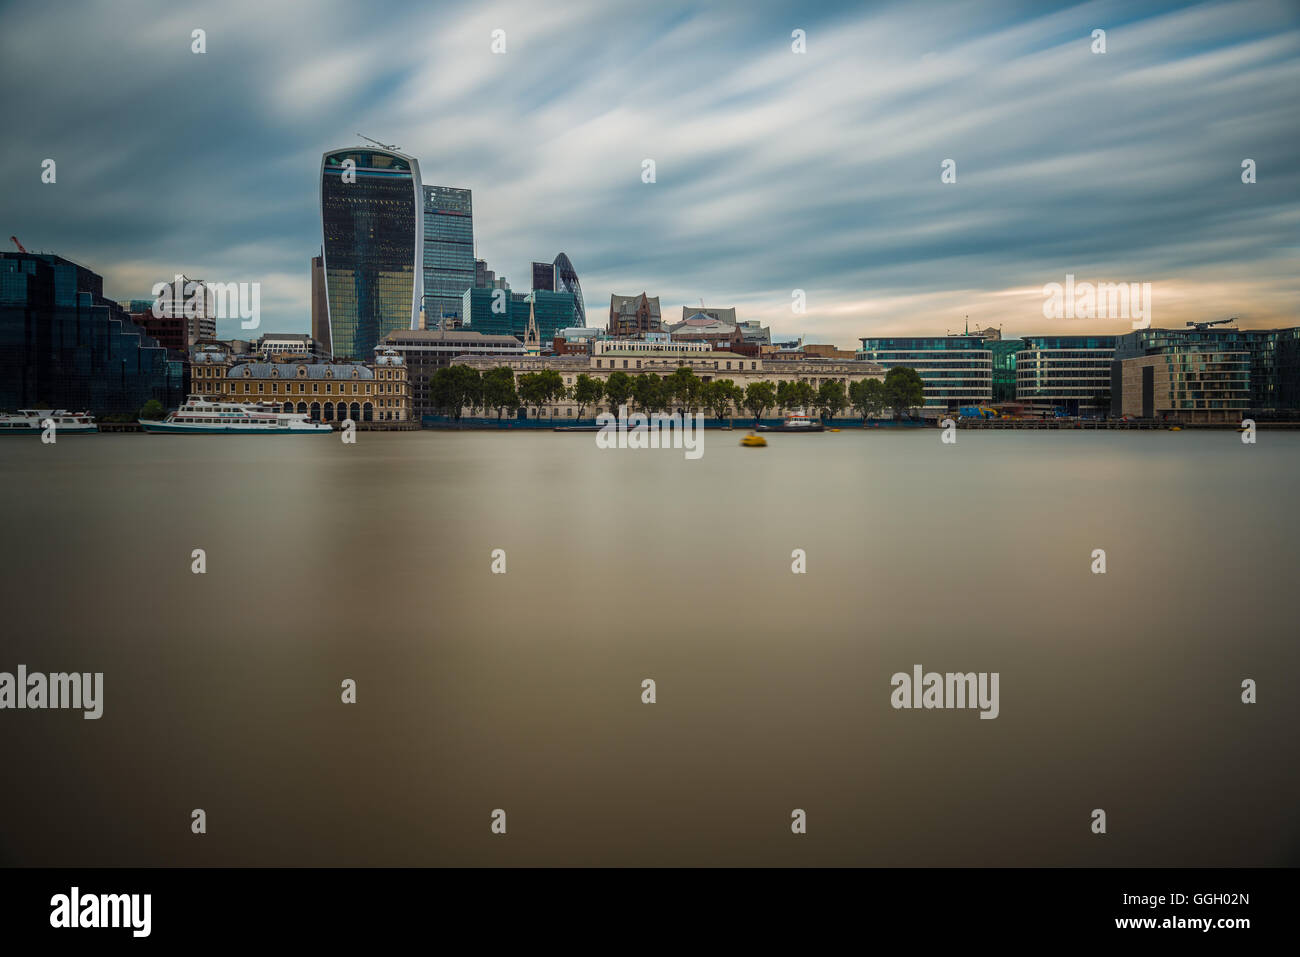 View of the City of London from across the Thames, London, United Kingdom - Stock Image